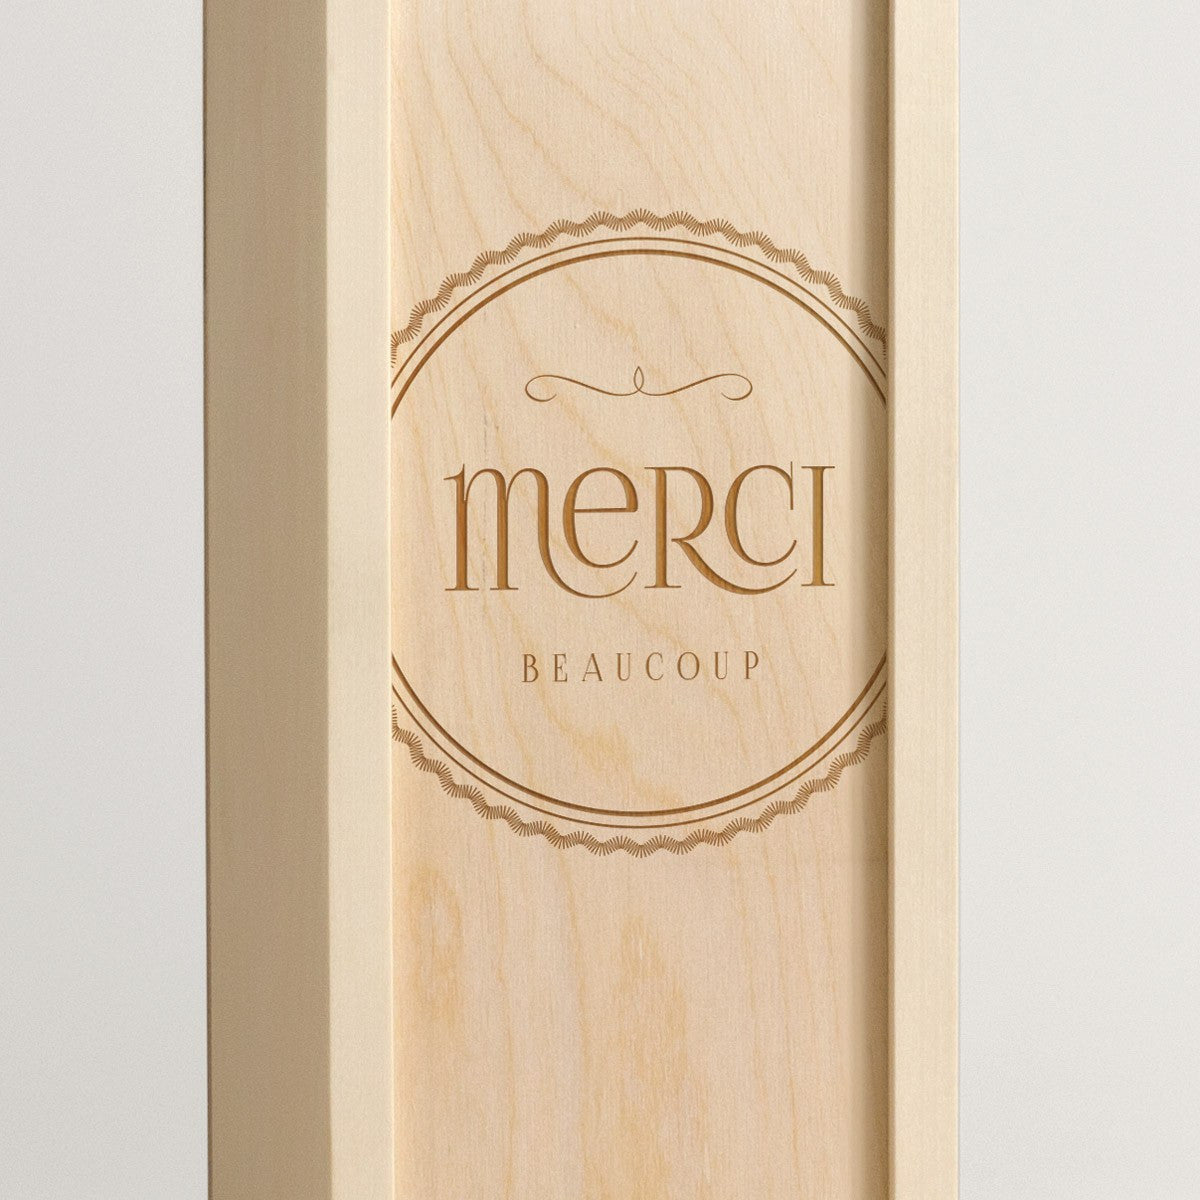 Merci Beaucoup - Wine Box - Detail Image